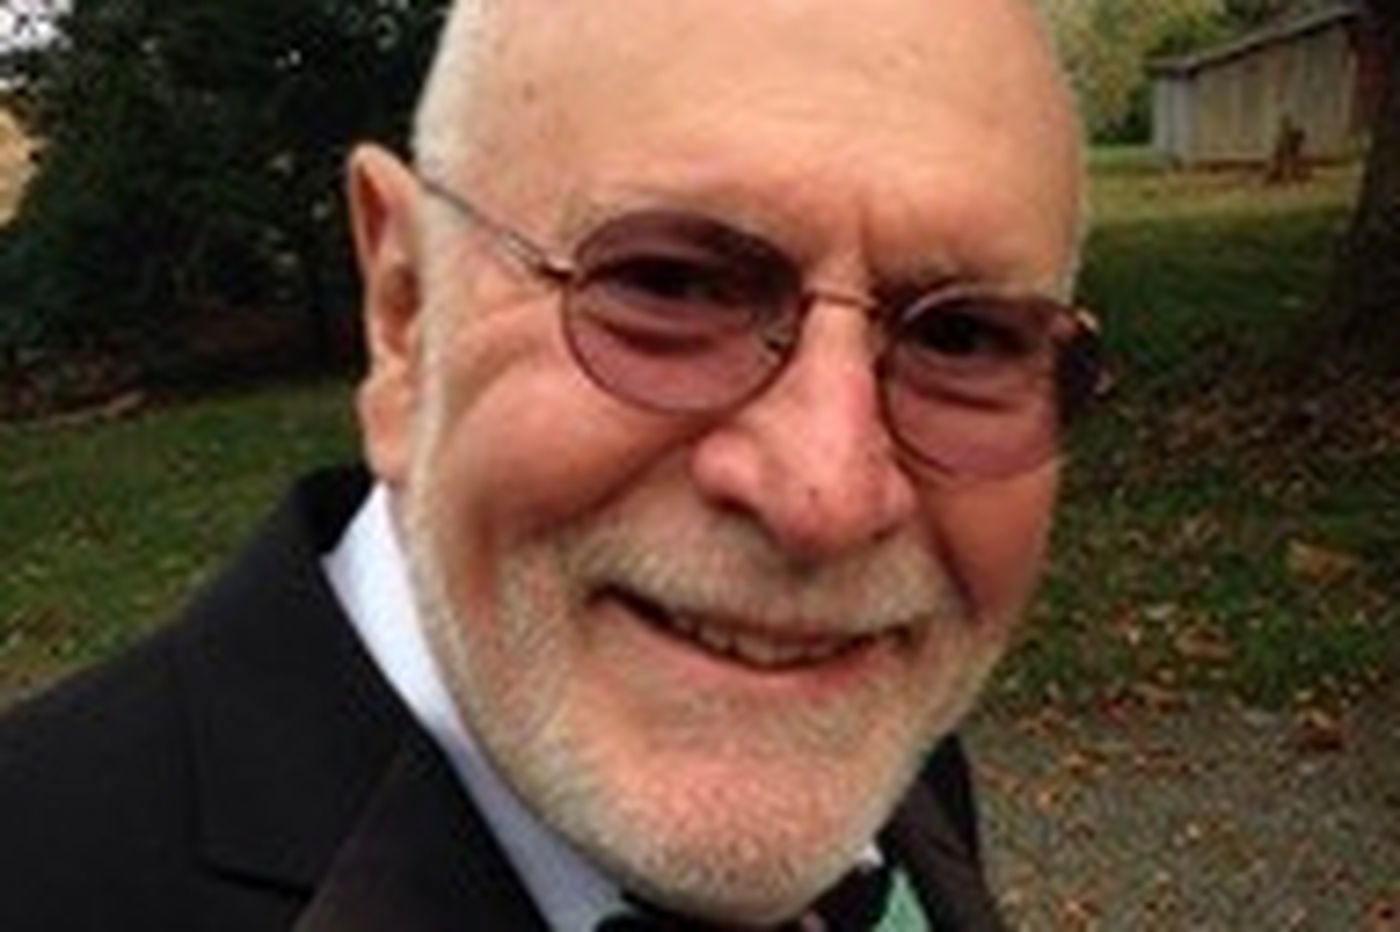 Paul Adorno, 76, 'a force for education' in Philadelphia